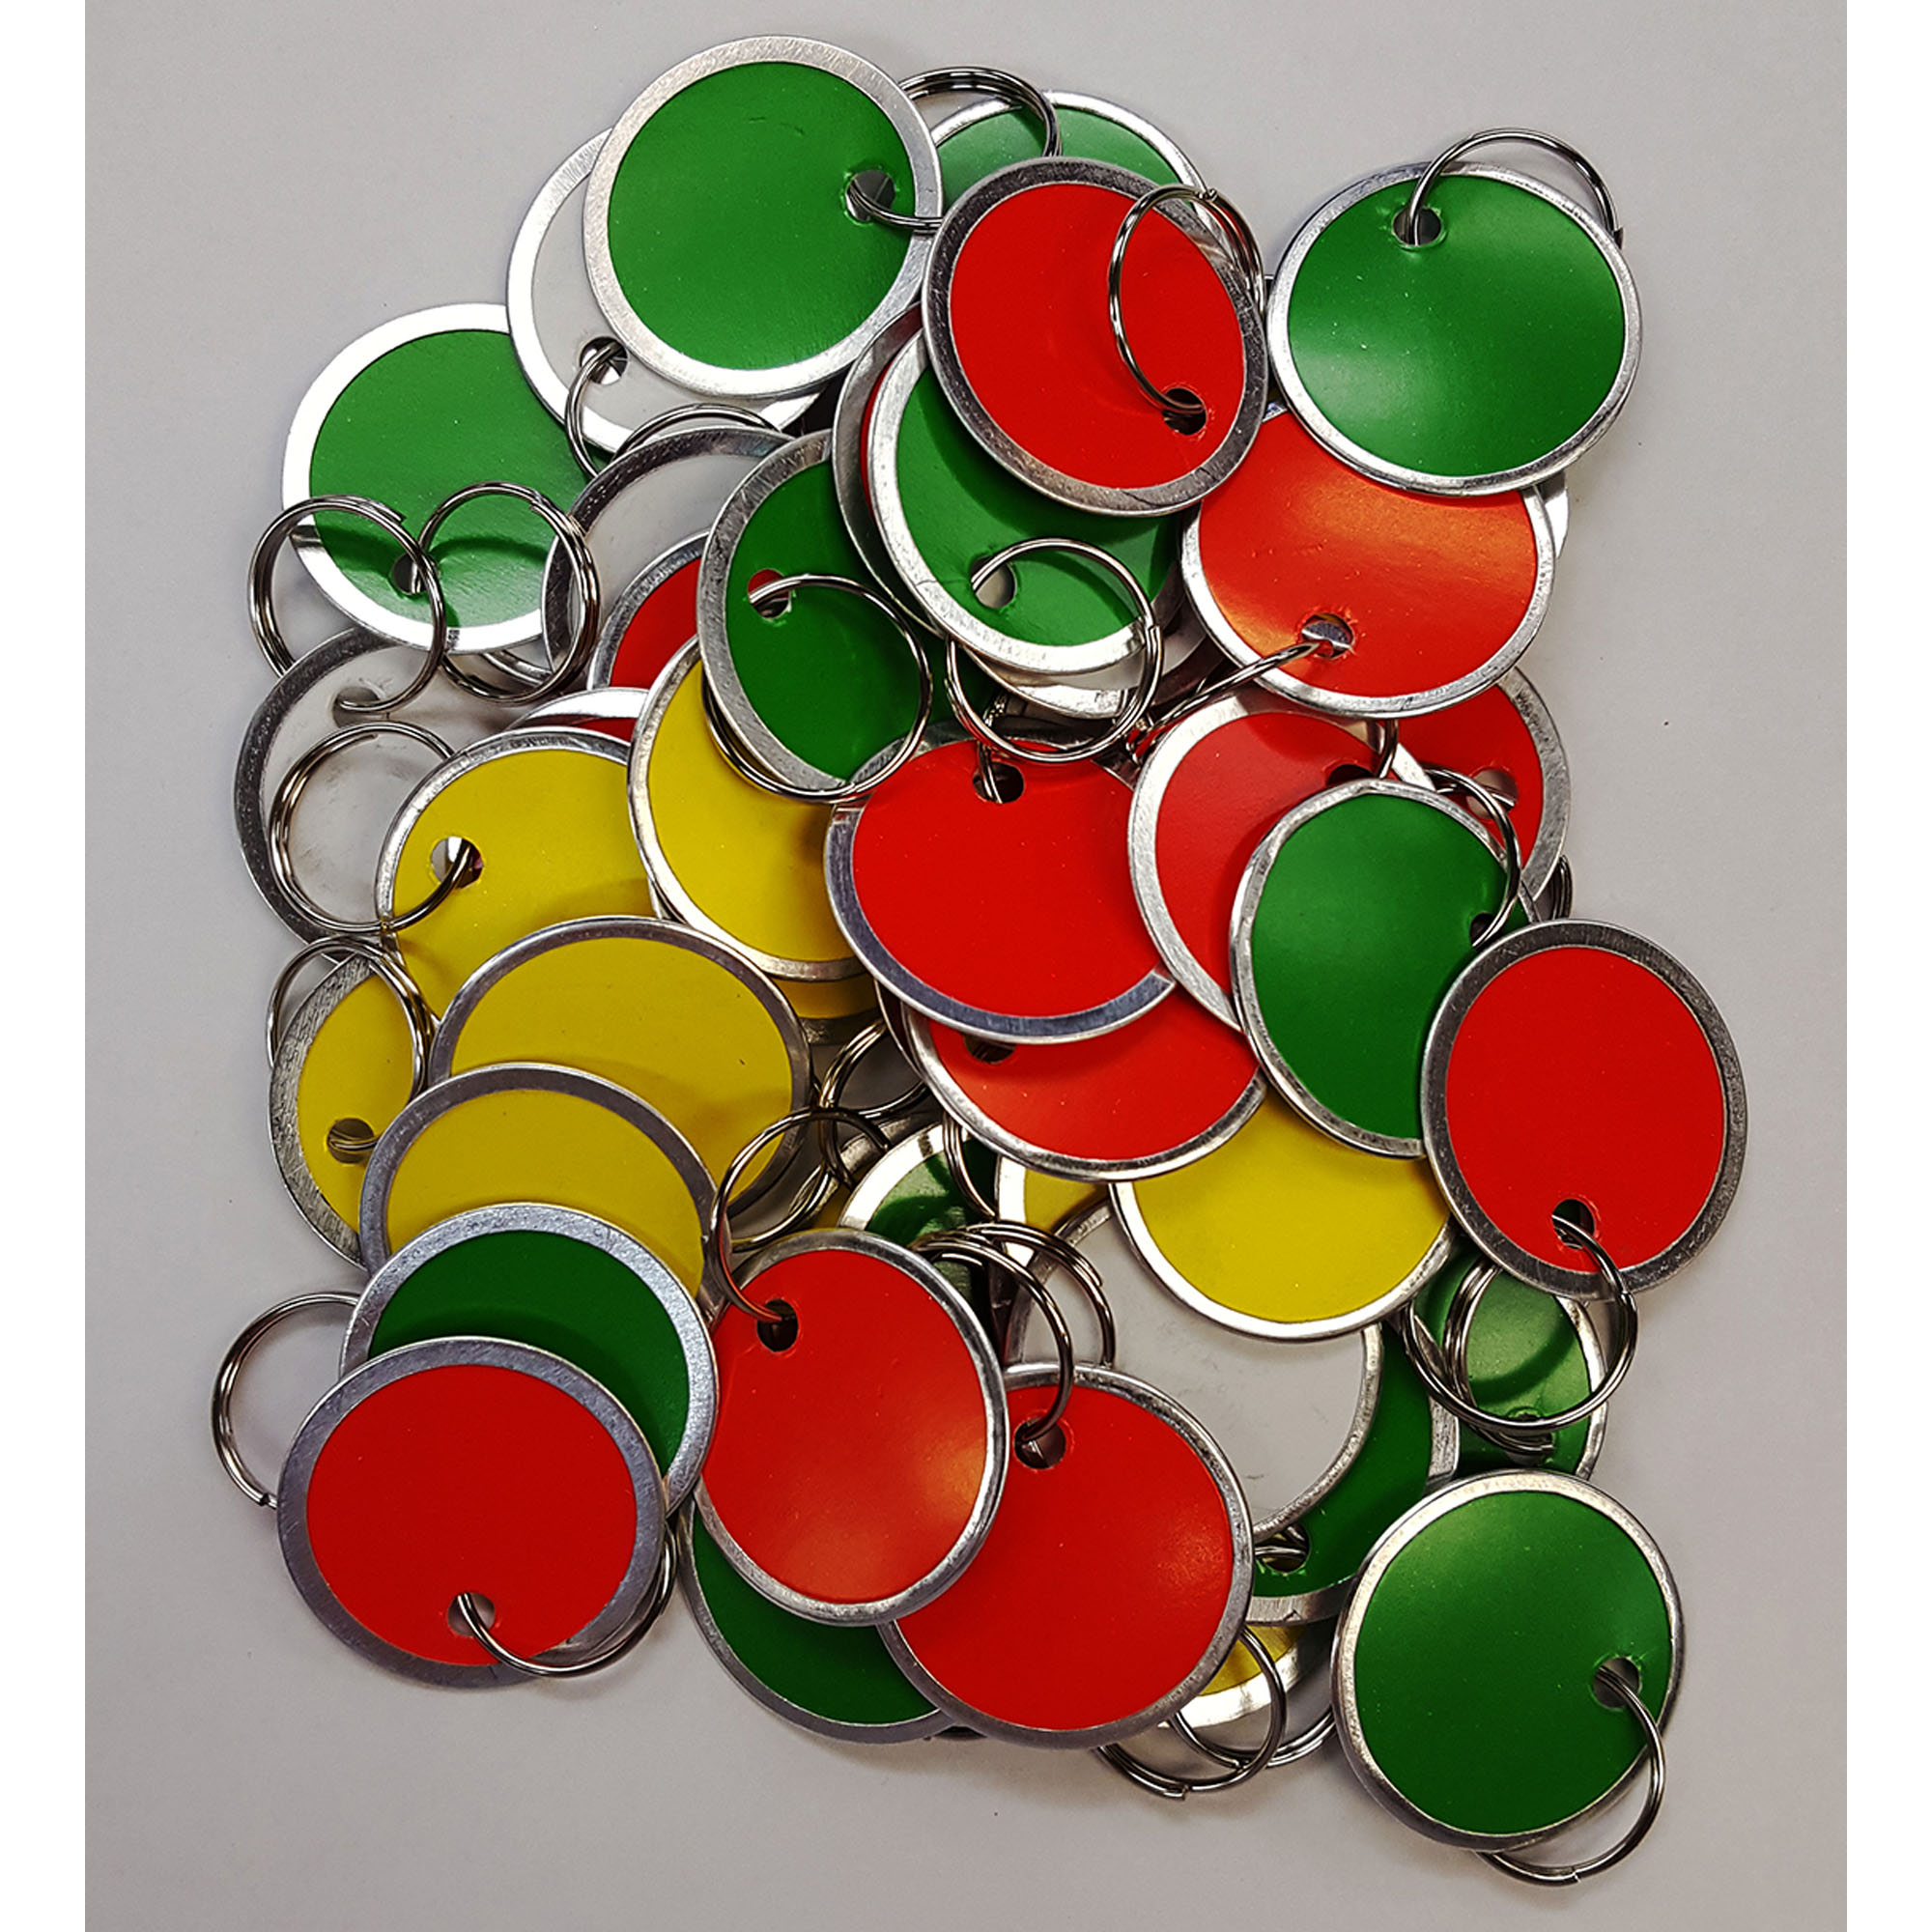 "Amram Key Tags 1 1 4"" Diameter, Split Ring. 50 Tags, Assorted Colors- Red, Yellow, Green & White. by Coda Resources"